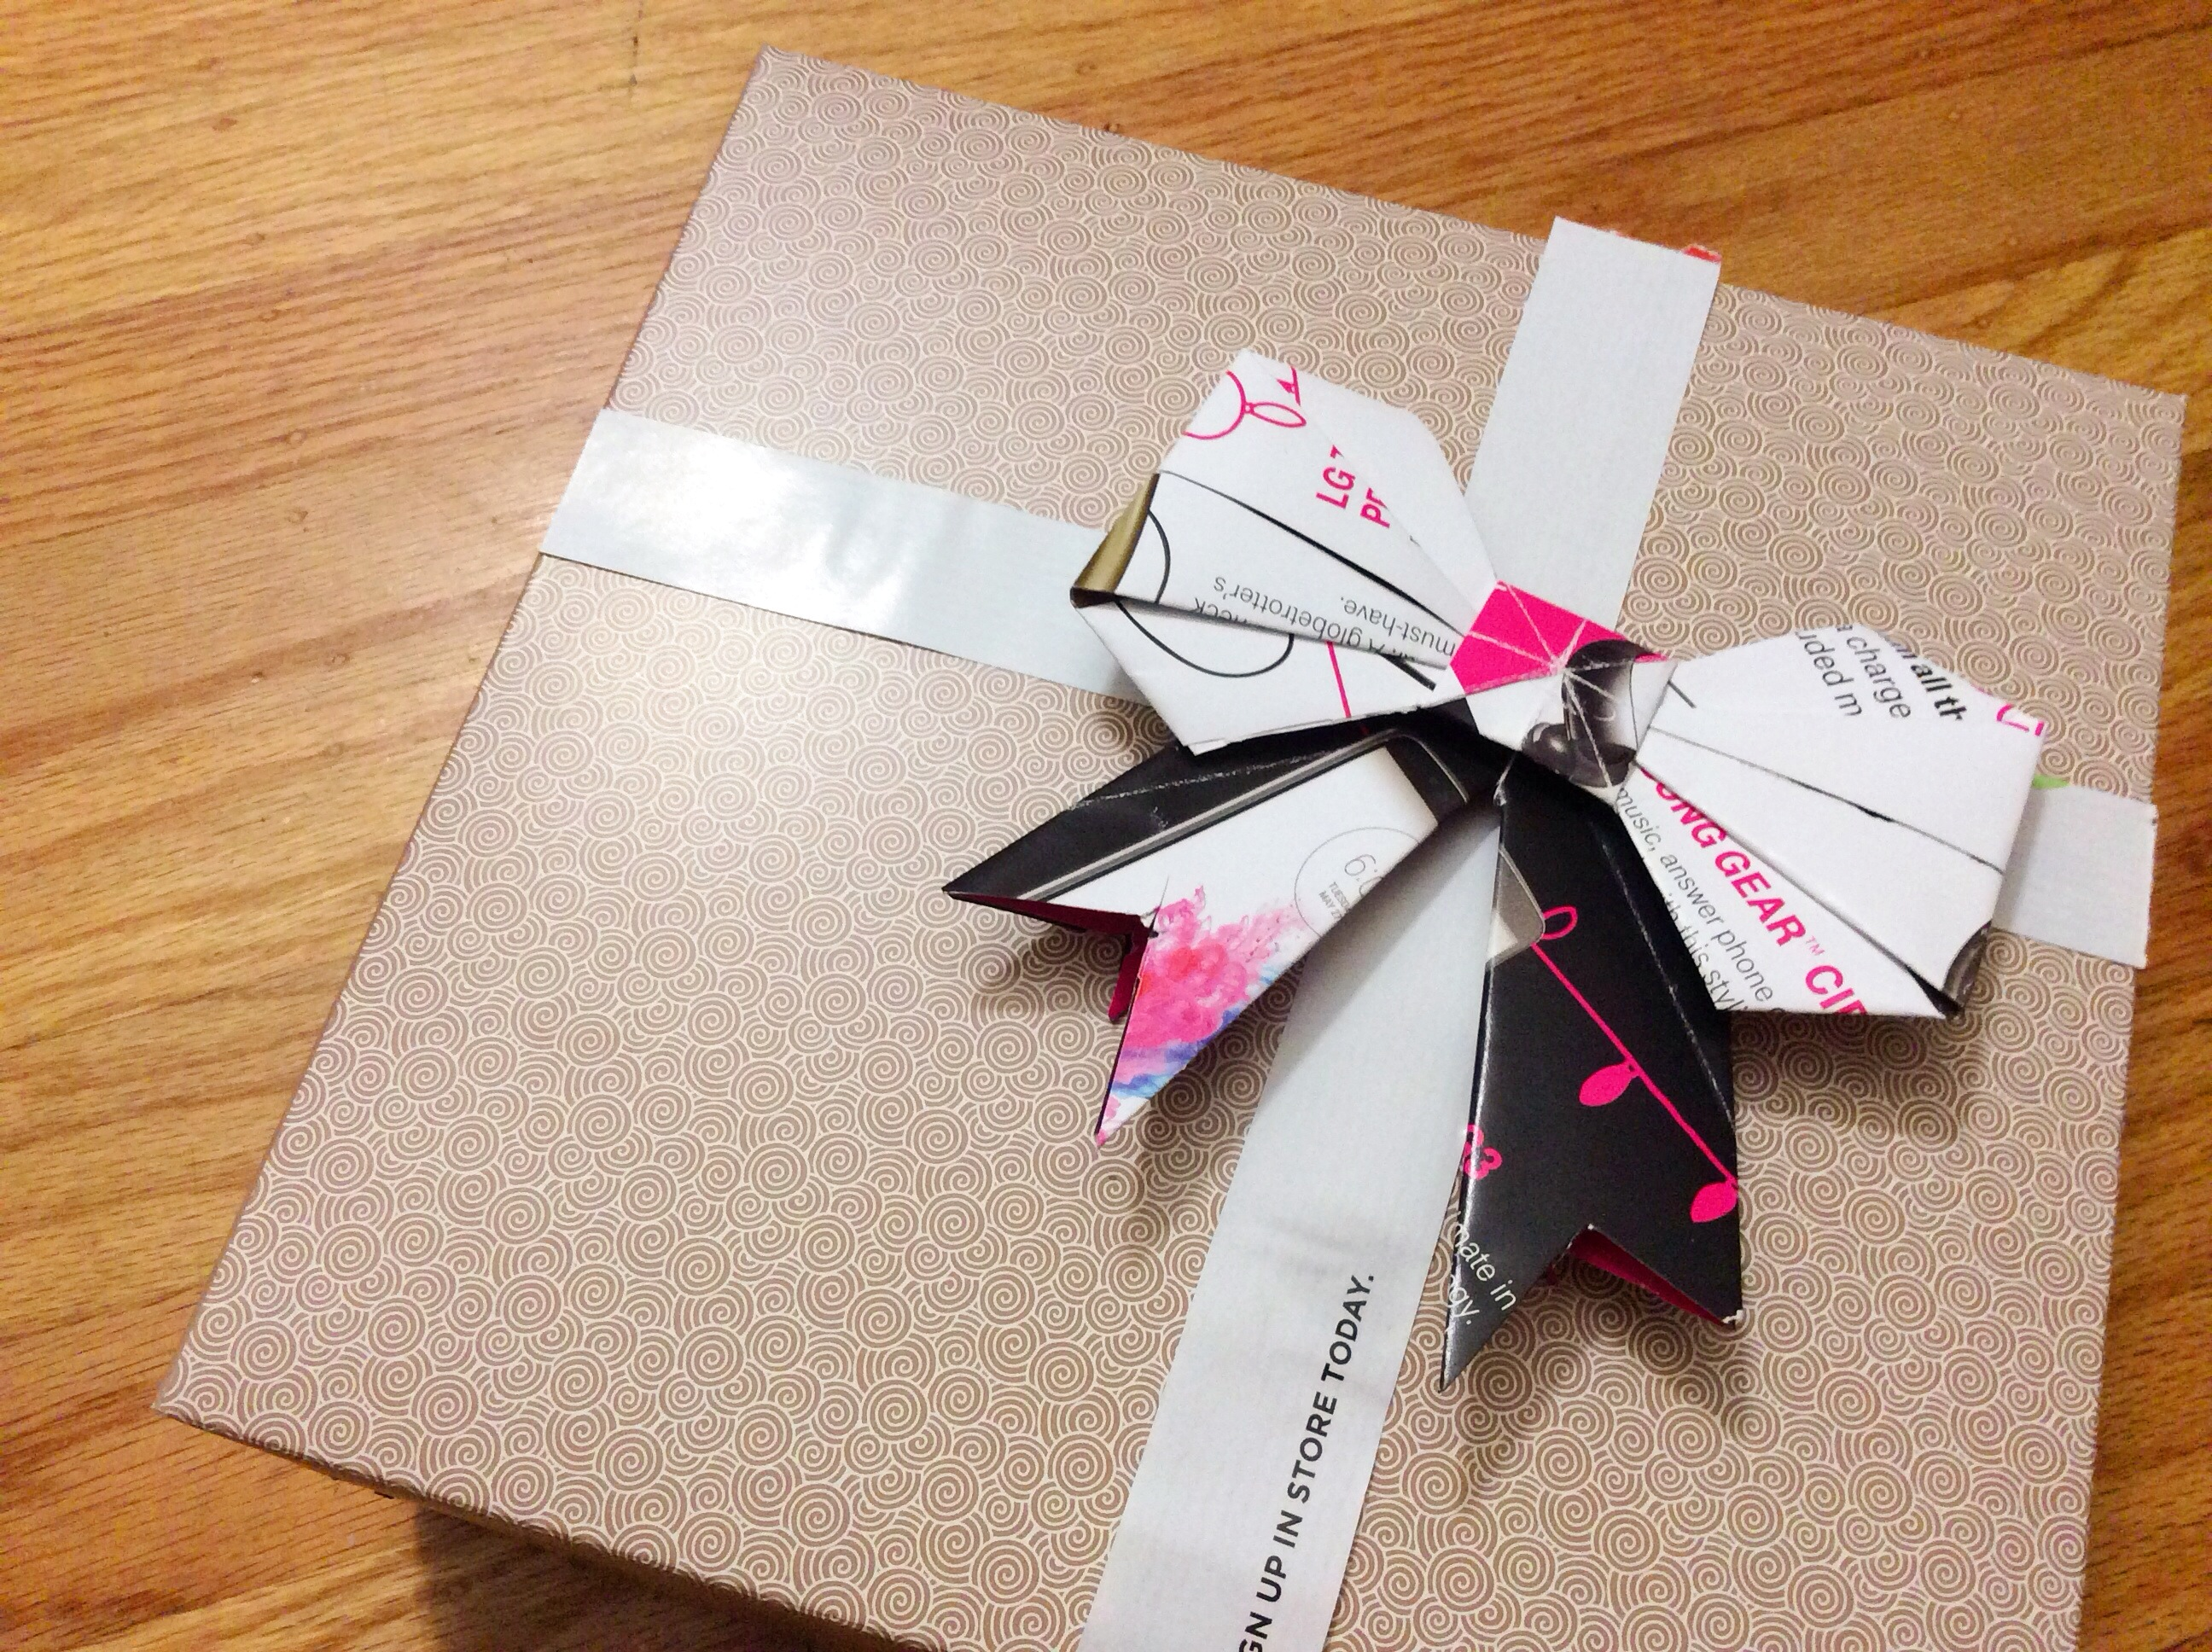 Alluring Diy Packaging Ideas Under A Budget Design Your Giftpackaging Coupon Code Gift Packaging Mooresboro Nc houzz-03 Creative Gift Packaging